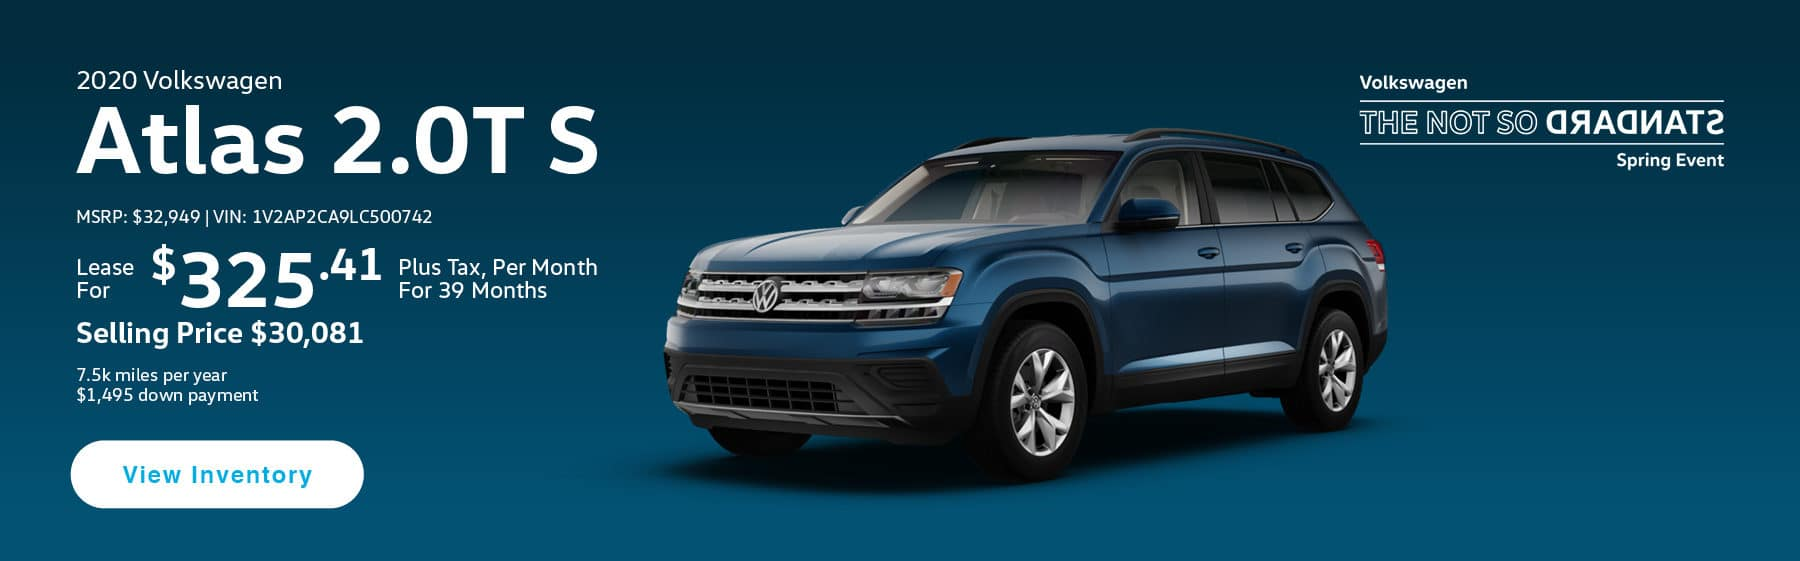 Lease the 2019 Atlas 2.0T S for $325.41 per month, plus tax for 39 months.